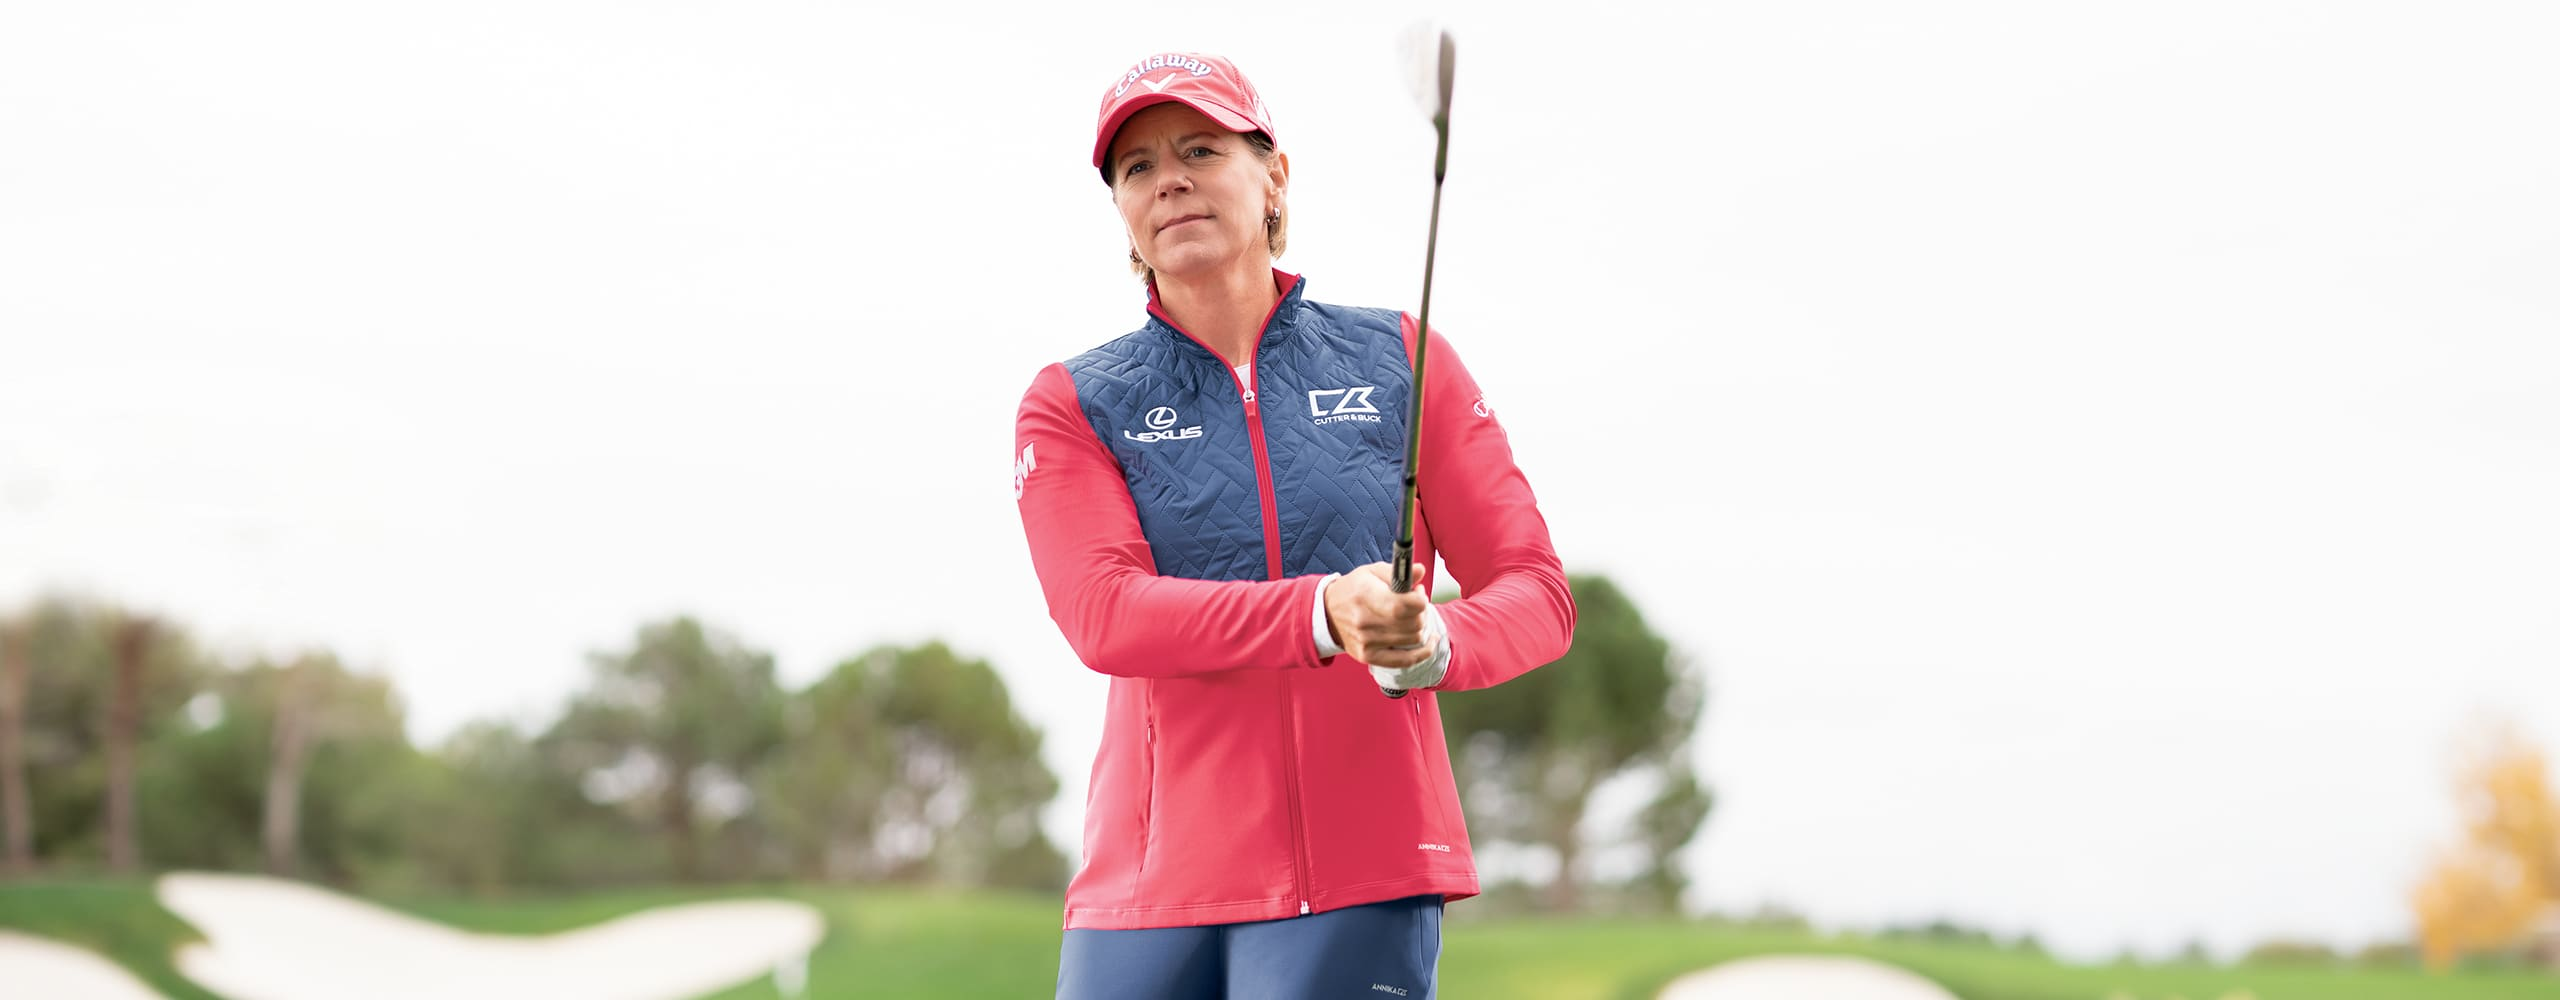 Woman golfing in Anika apparel.